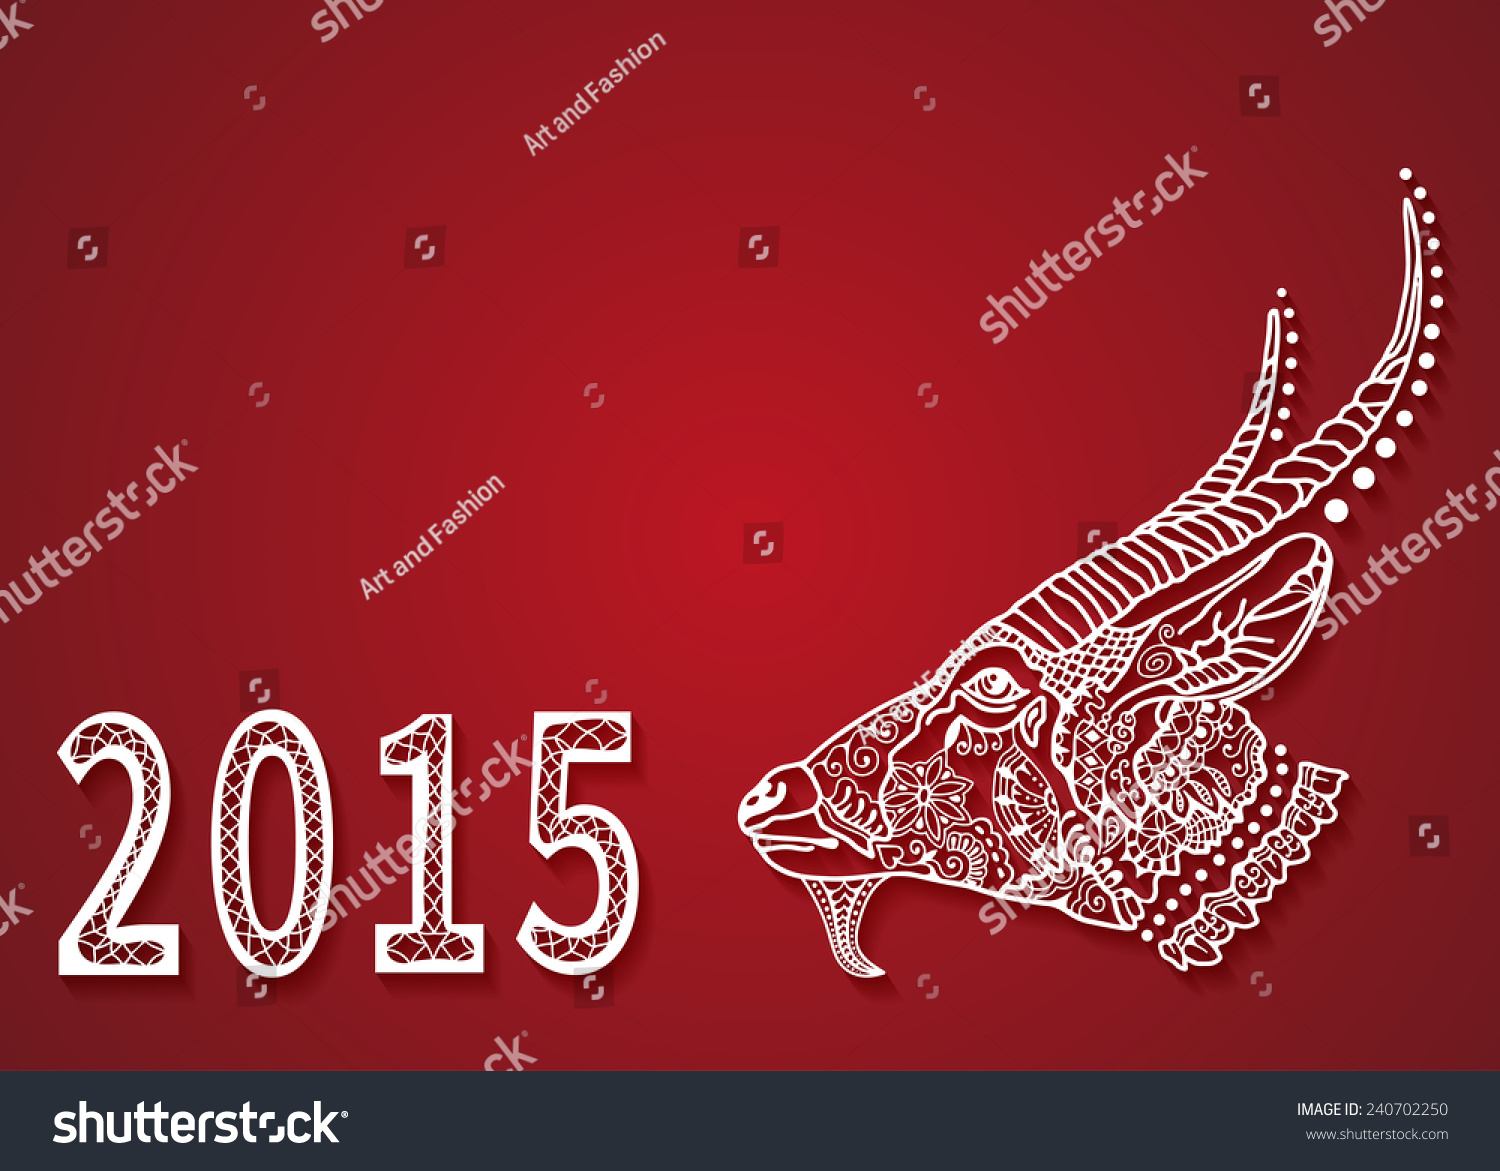 2015 Chinese New Year Of The Goat White Silhouette With Shadow Isolated On Red Background